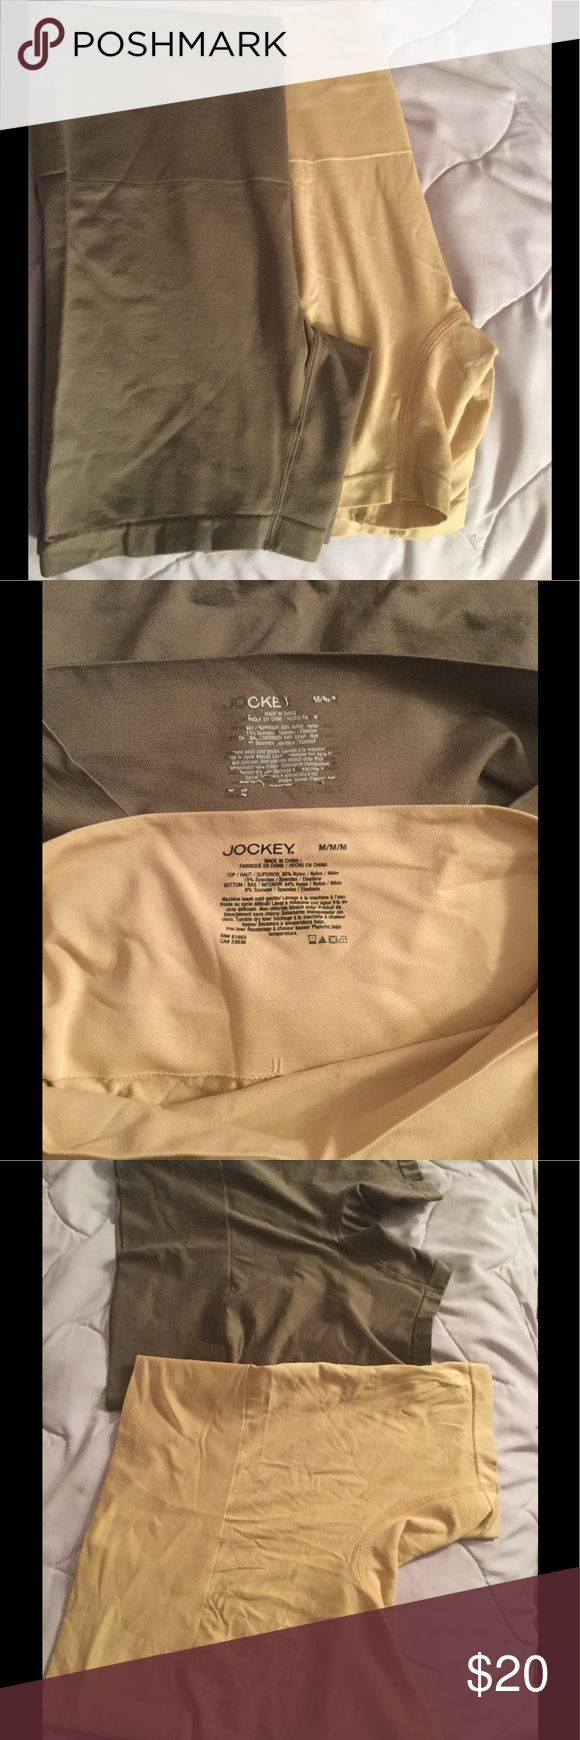 "Two Jockey shape wear One taupe, one beige jockey shape wear/spanx size medium. Worn the beige probably once and the taupe probably five times. They are a little shirt for me but extremely comfortable. The length is 13"" from top to bottom. Sold together but willing to split Jockey Intimates & Sleepwear Shapewear"